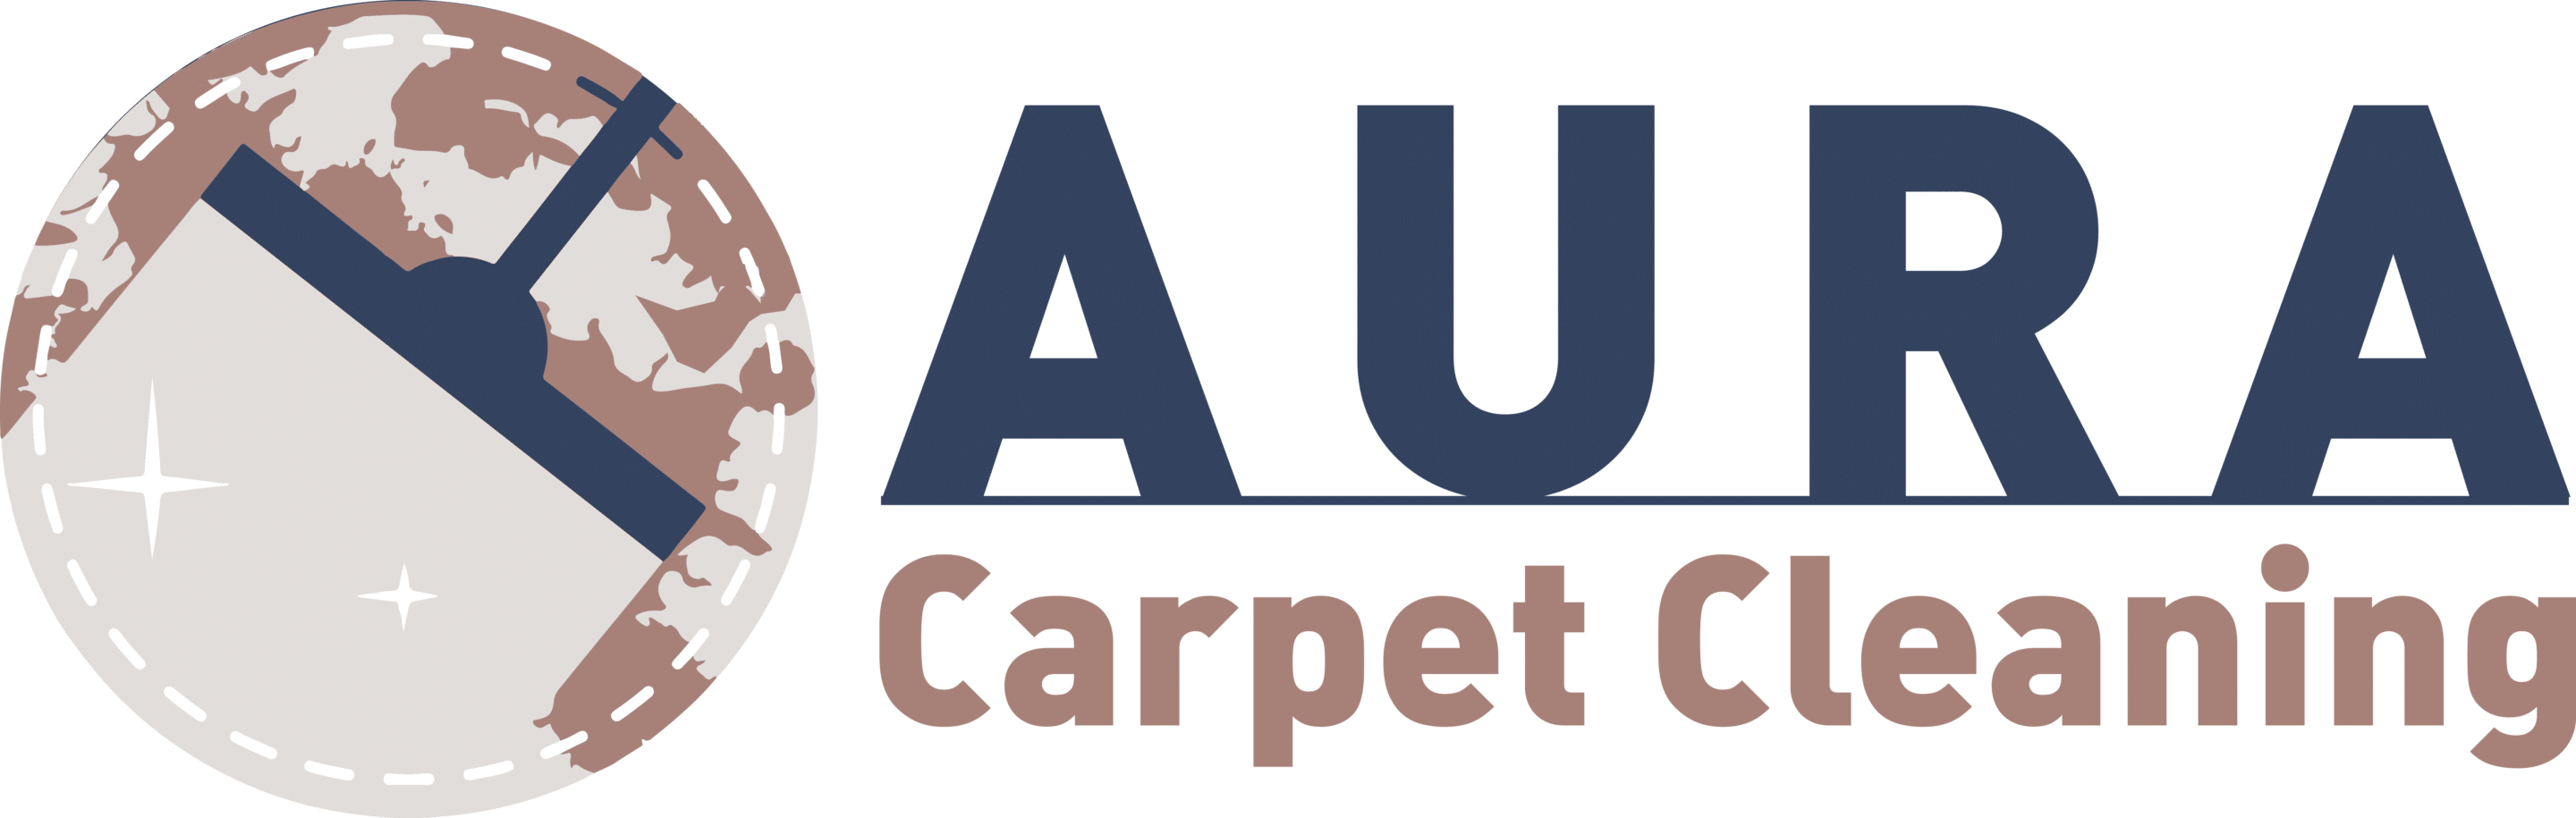 Aura Carpet Cleaning